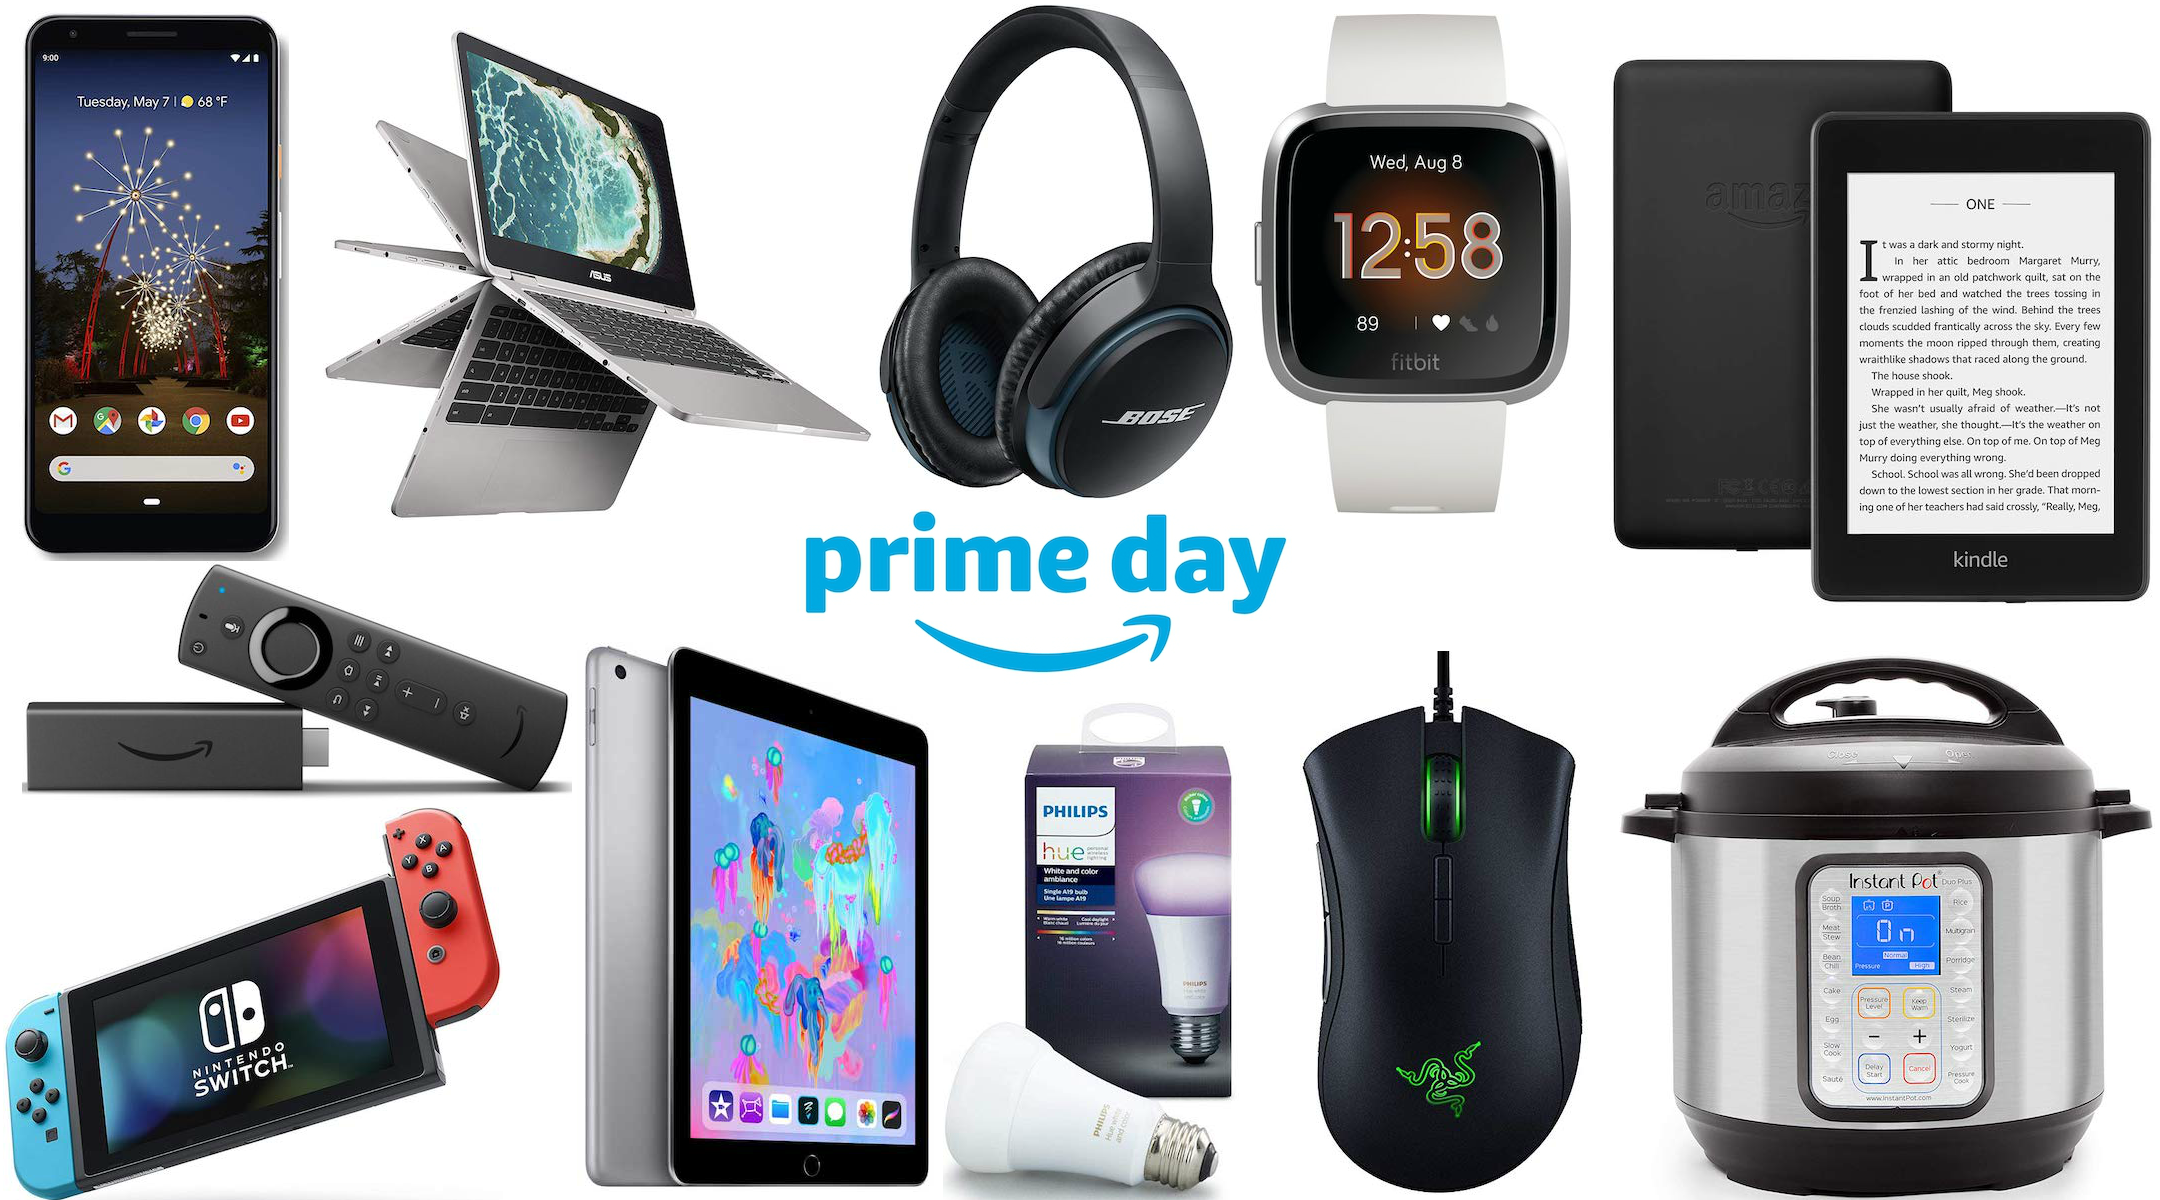 Amazon Prime Day best deals: Laptops, phones, TVs, and more